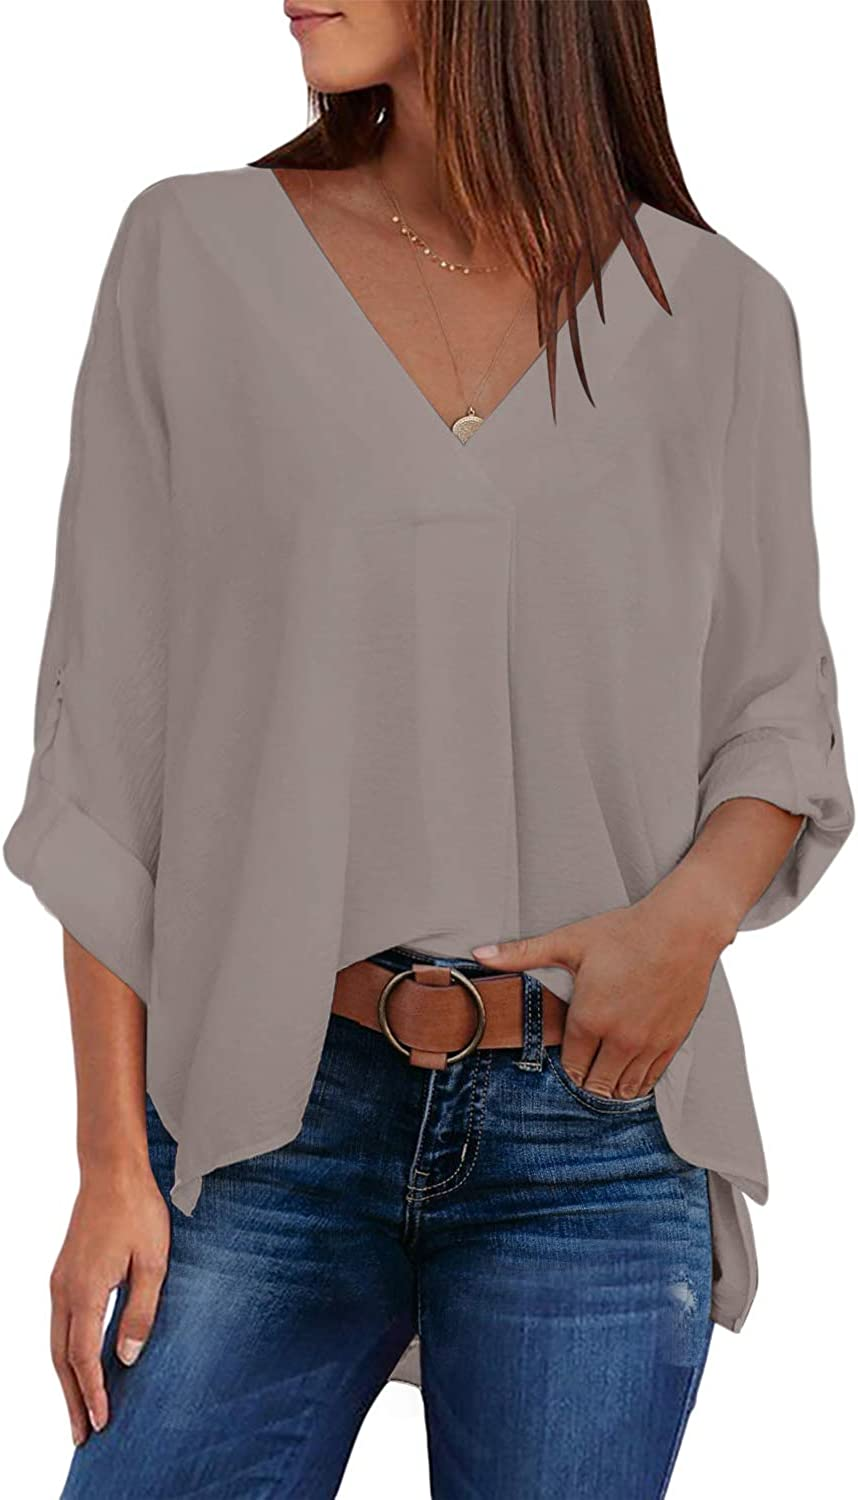 Happy Sailed Women's Casual V Neck 3/4 Cuffed Sleeves Shirt Loose Flowy Chiffon Blouses Tops S-2XL